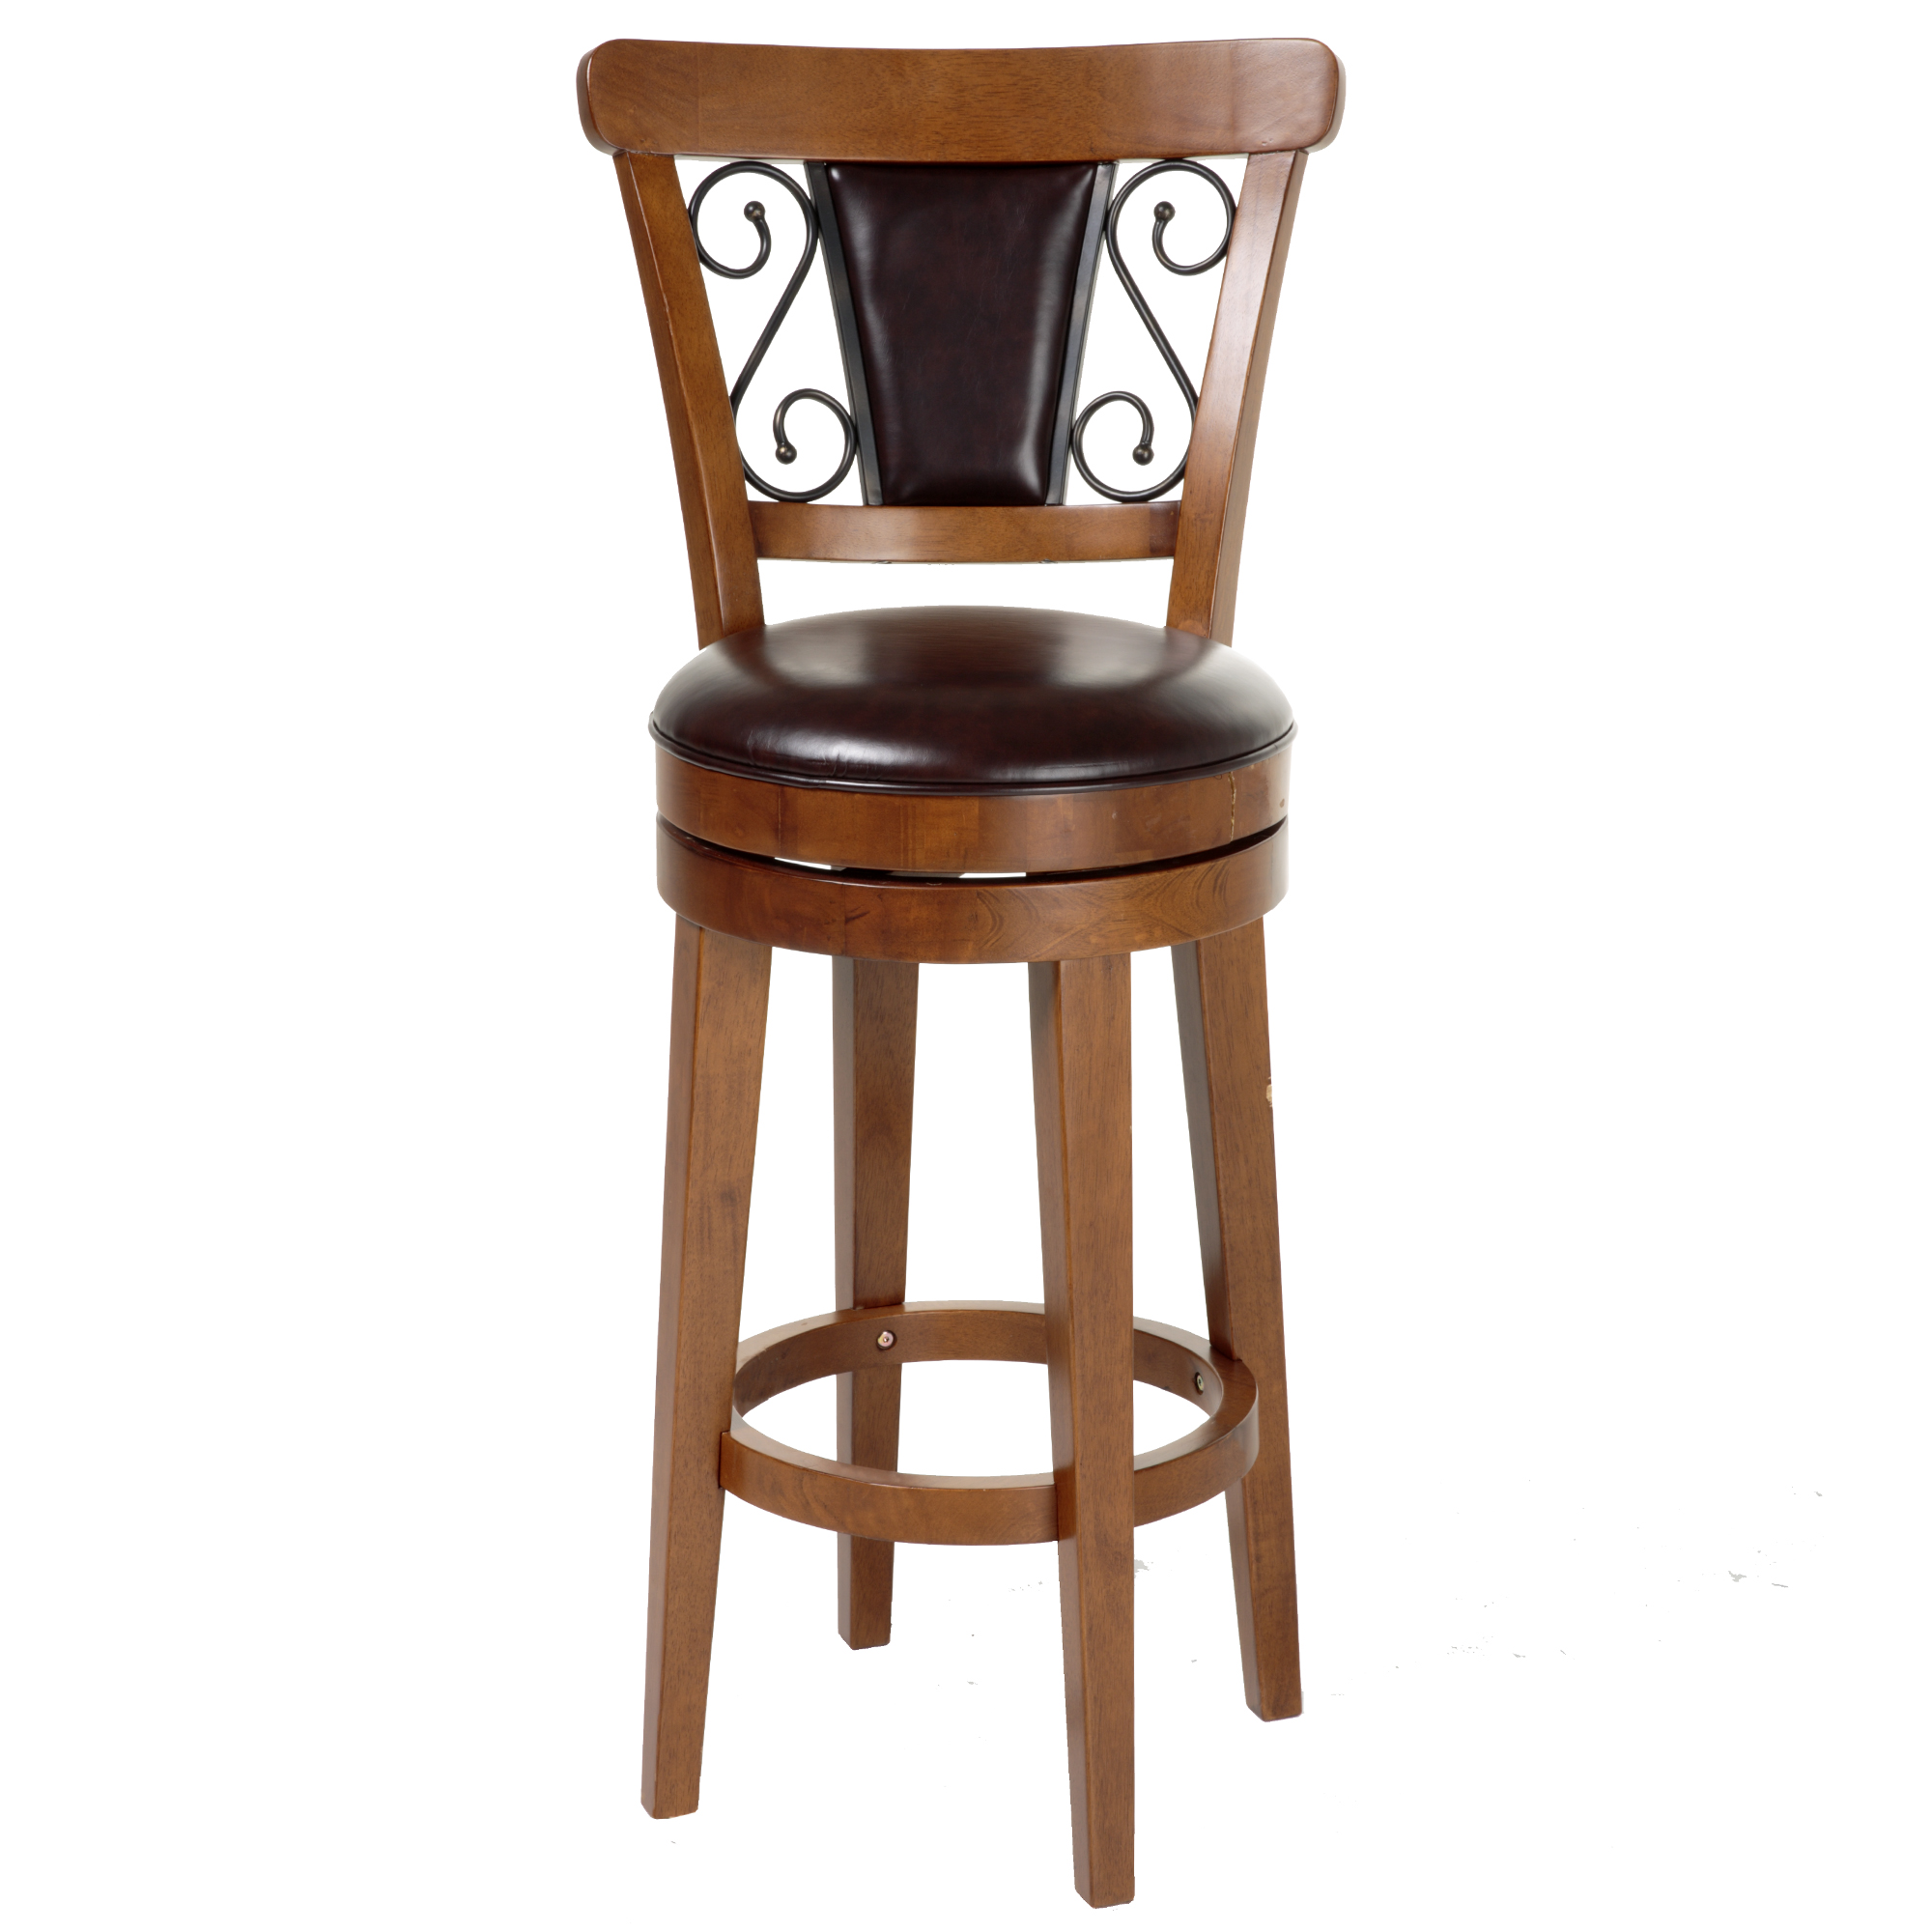 C1x070fashion Bed Group Trenton Swivel Seat Bar Stool With Nutmeg